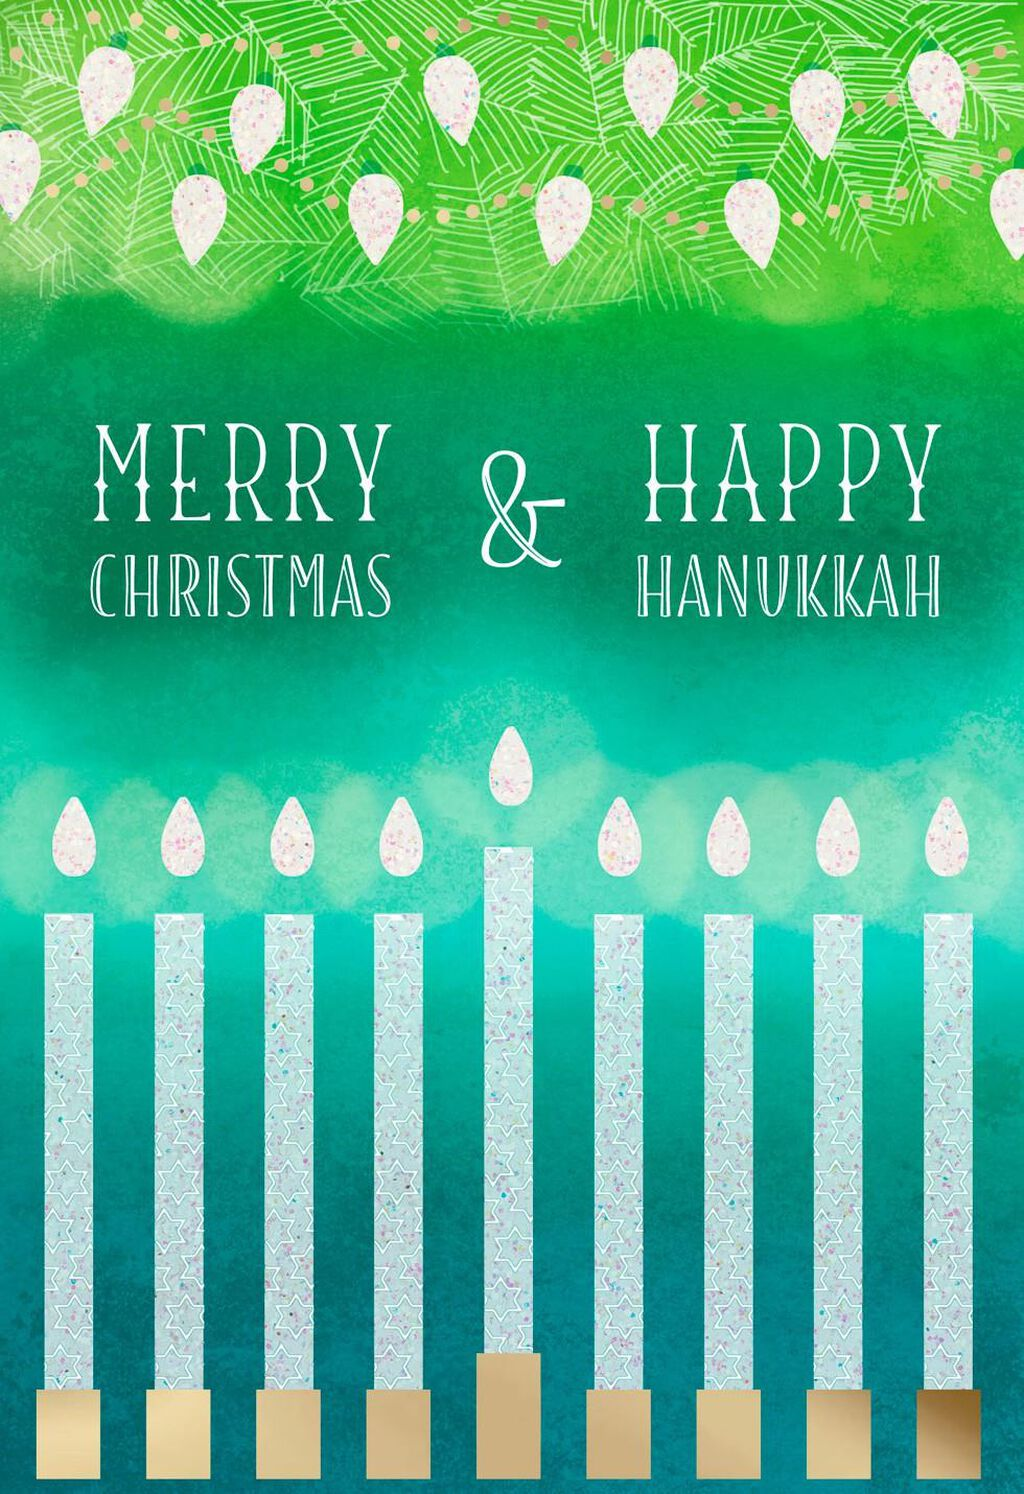 Merry Christmas And Happy Hanukkah Card Greeting Cards Hallmark